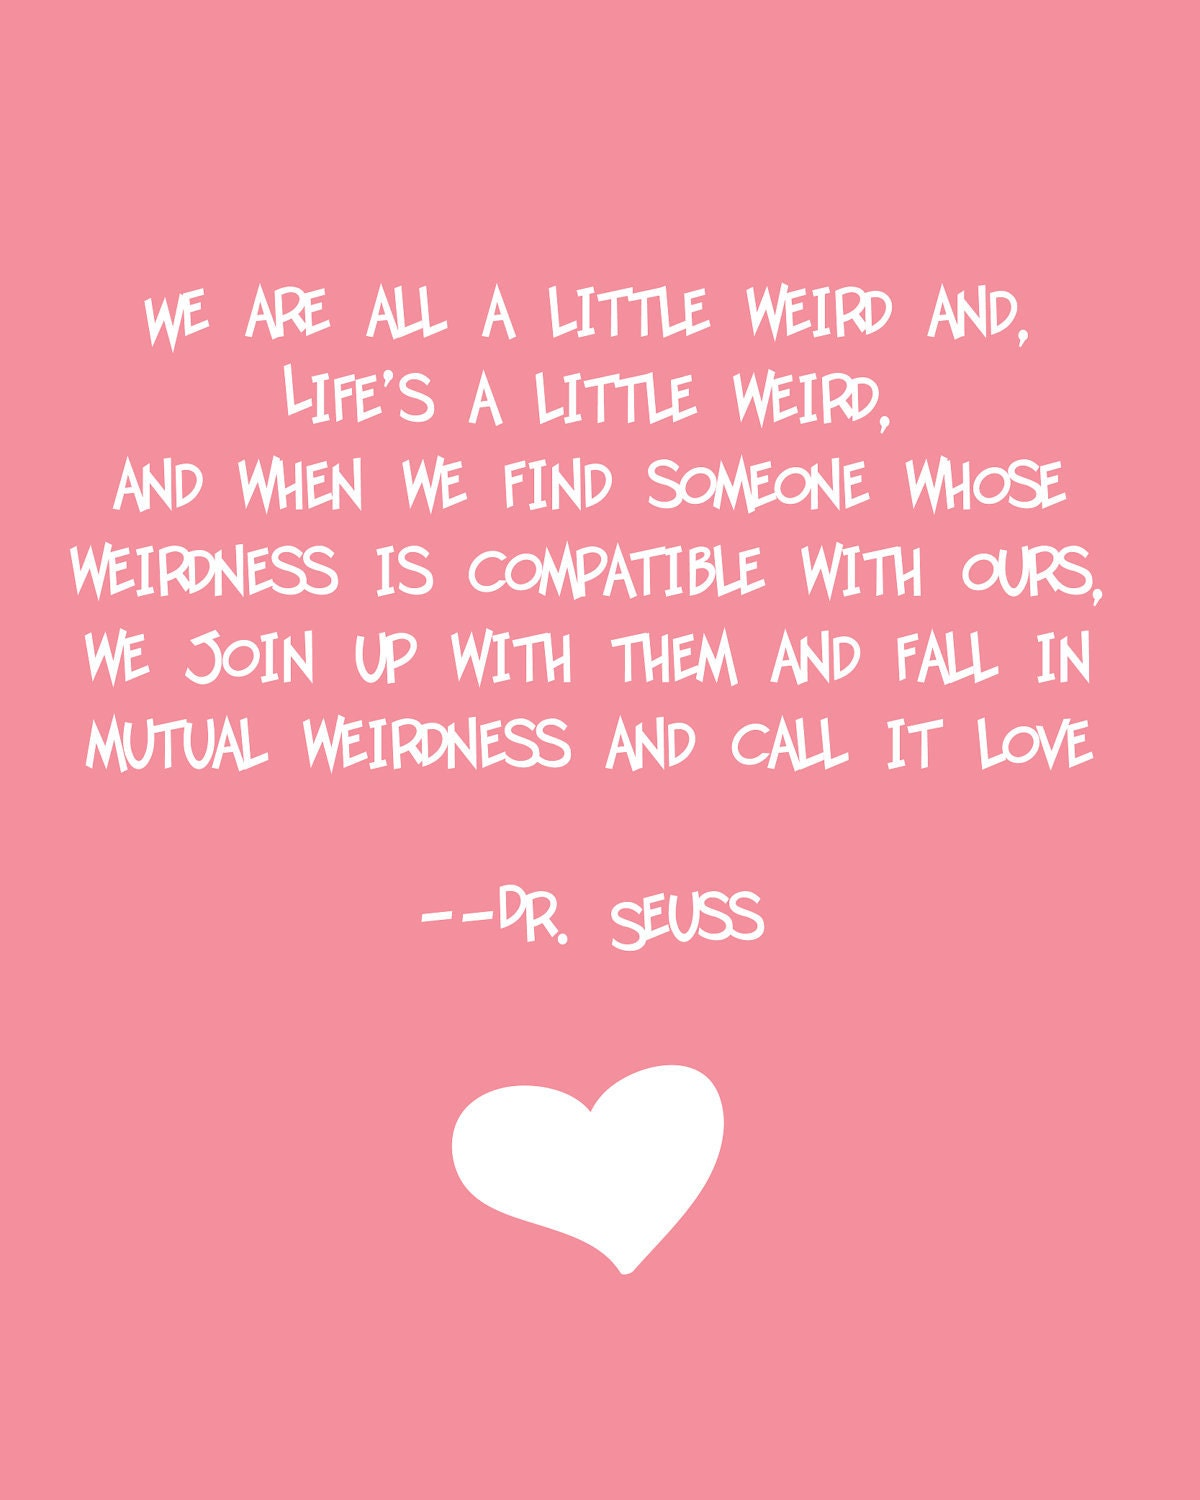 Dr Seuss Friendship Quotes Friendship Quotes From Dr Seuss Of Dr Seuss S Greatest Most